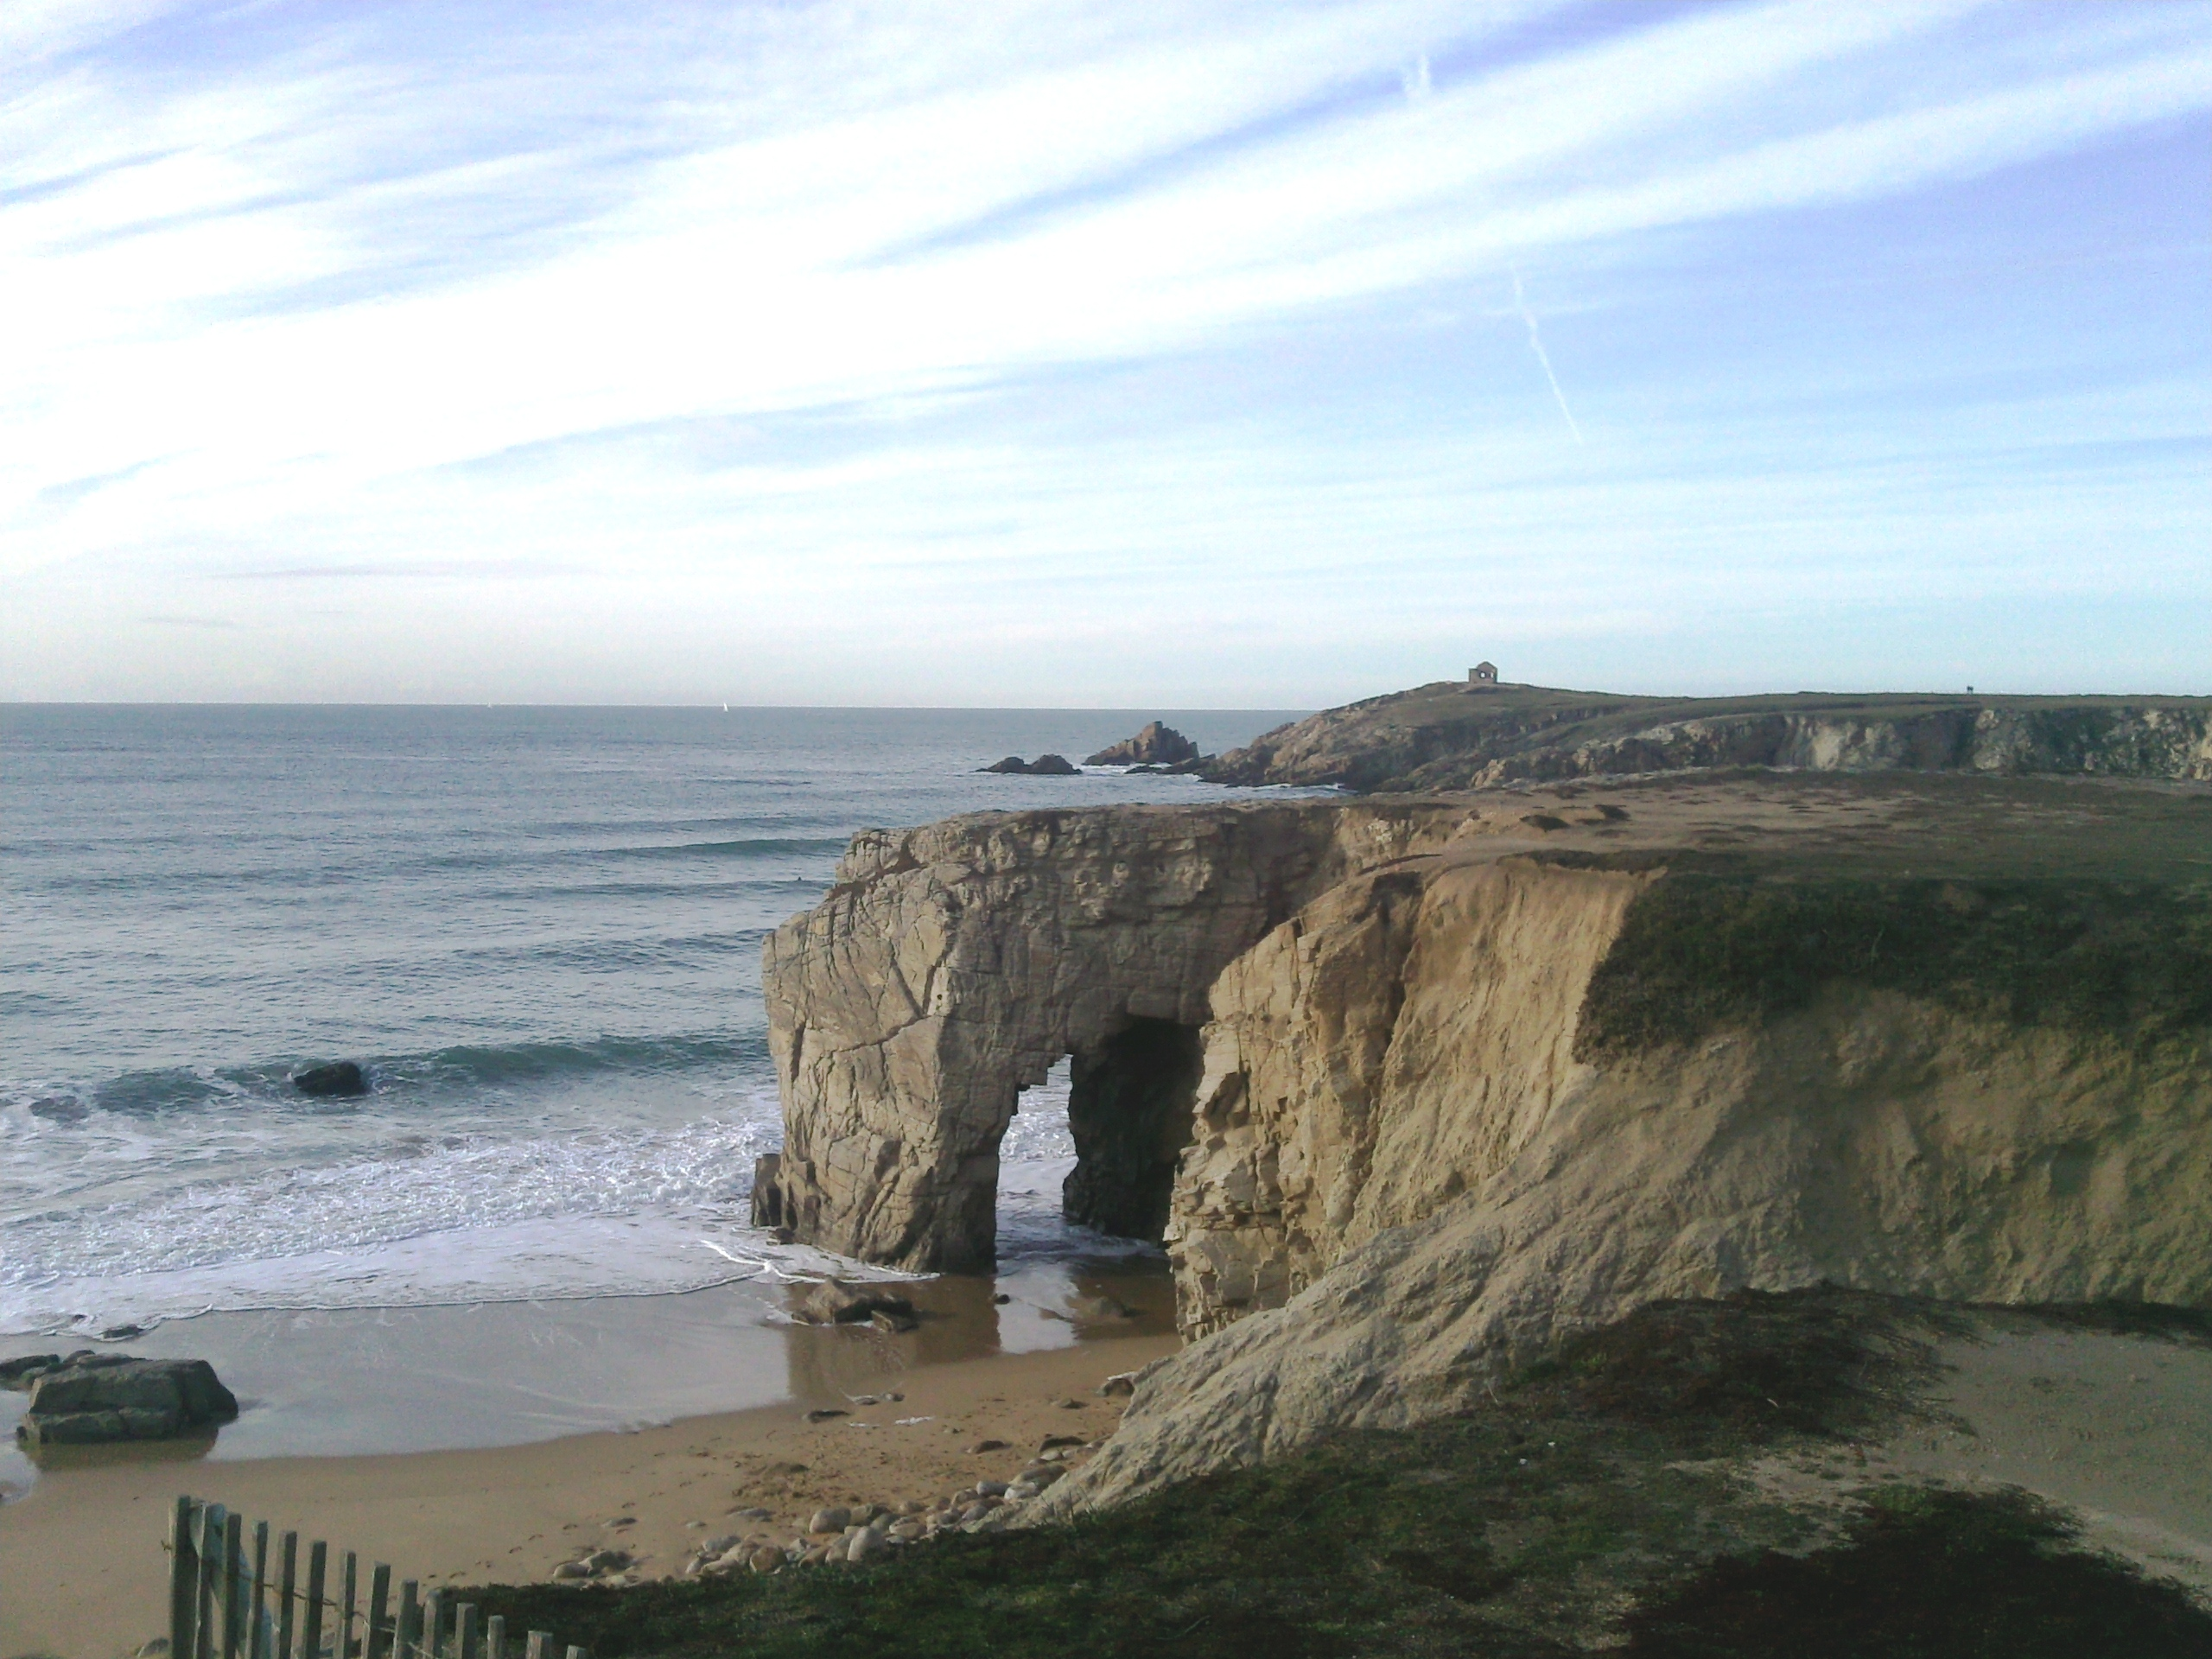 France 39 s most scenic roads brittany s c te sauvage - Camping port blanc saint pierre quiberon ...